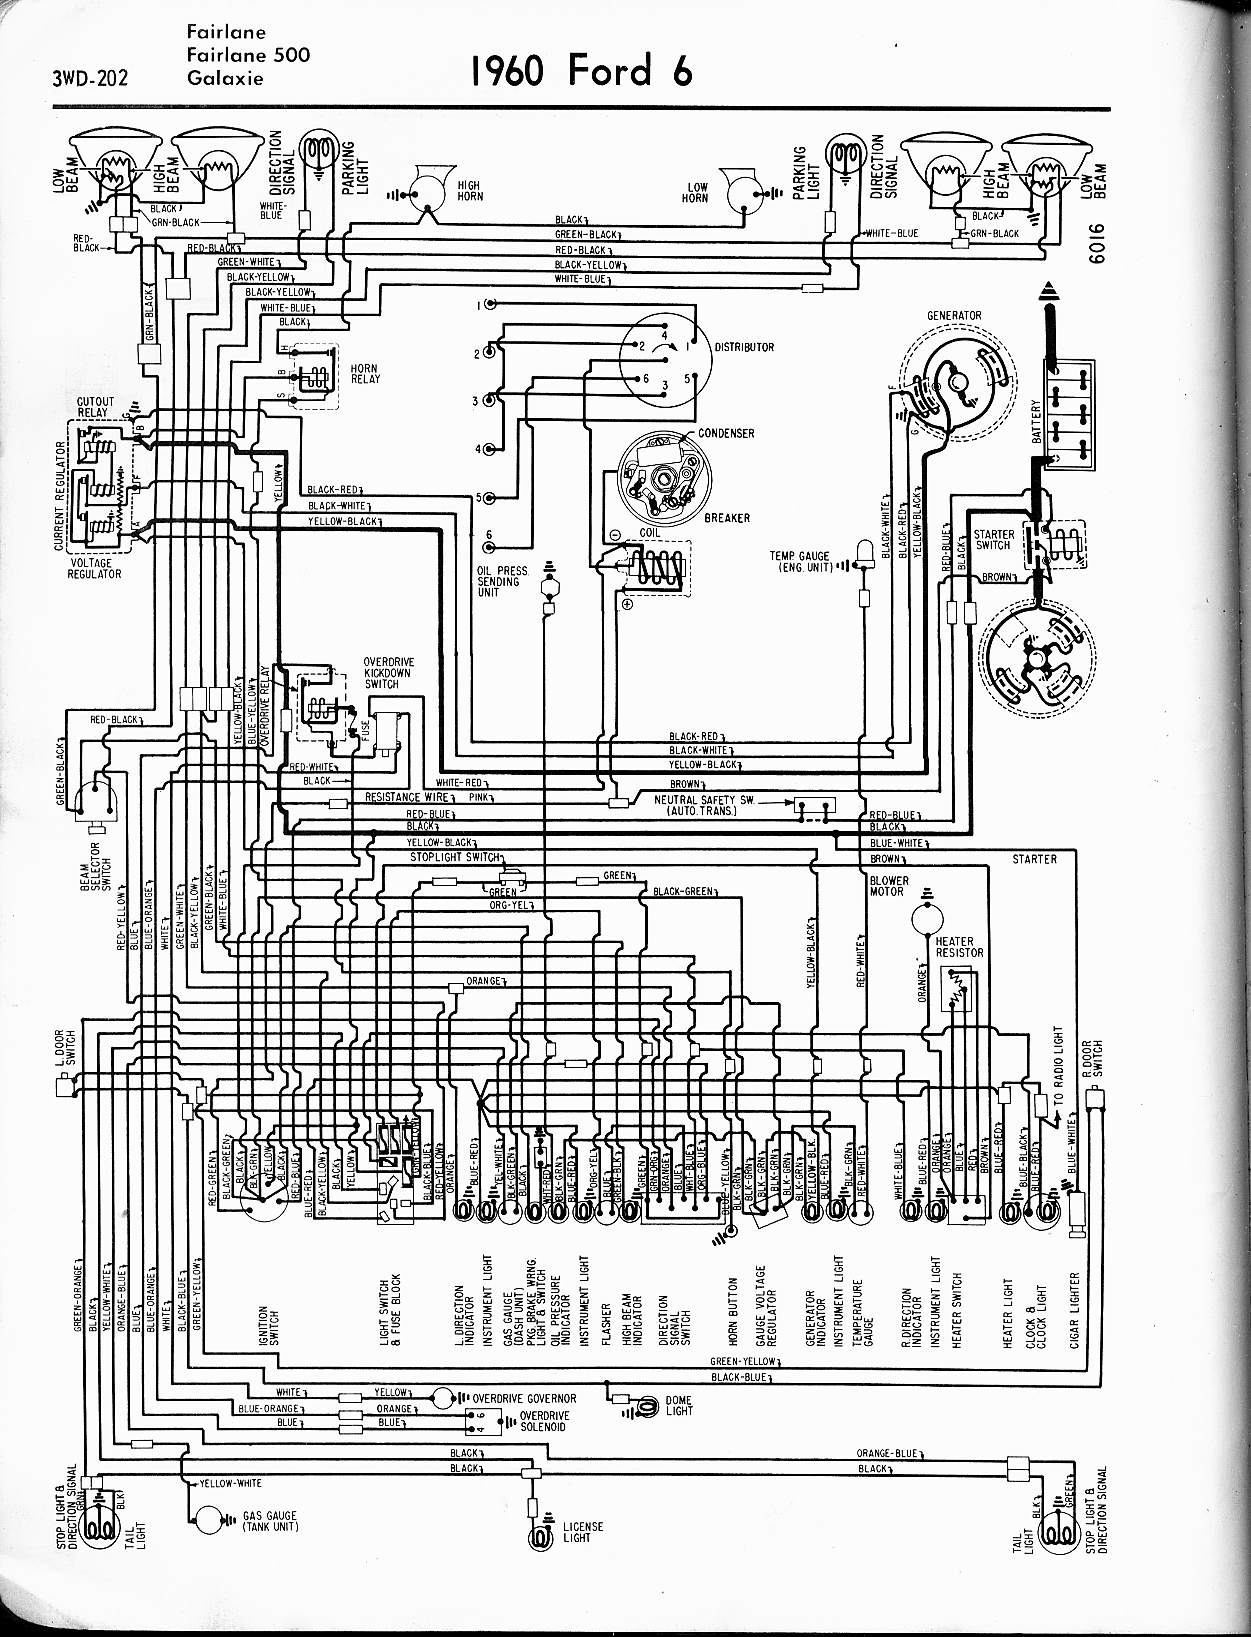 57 65 Ford Wiring Diagrams Electrical Book Pdf 1960 6 Cyl Fairlane 500 Galaxie